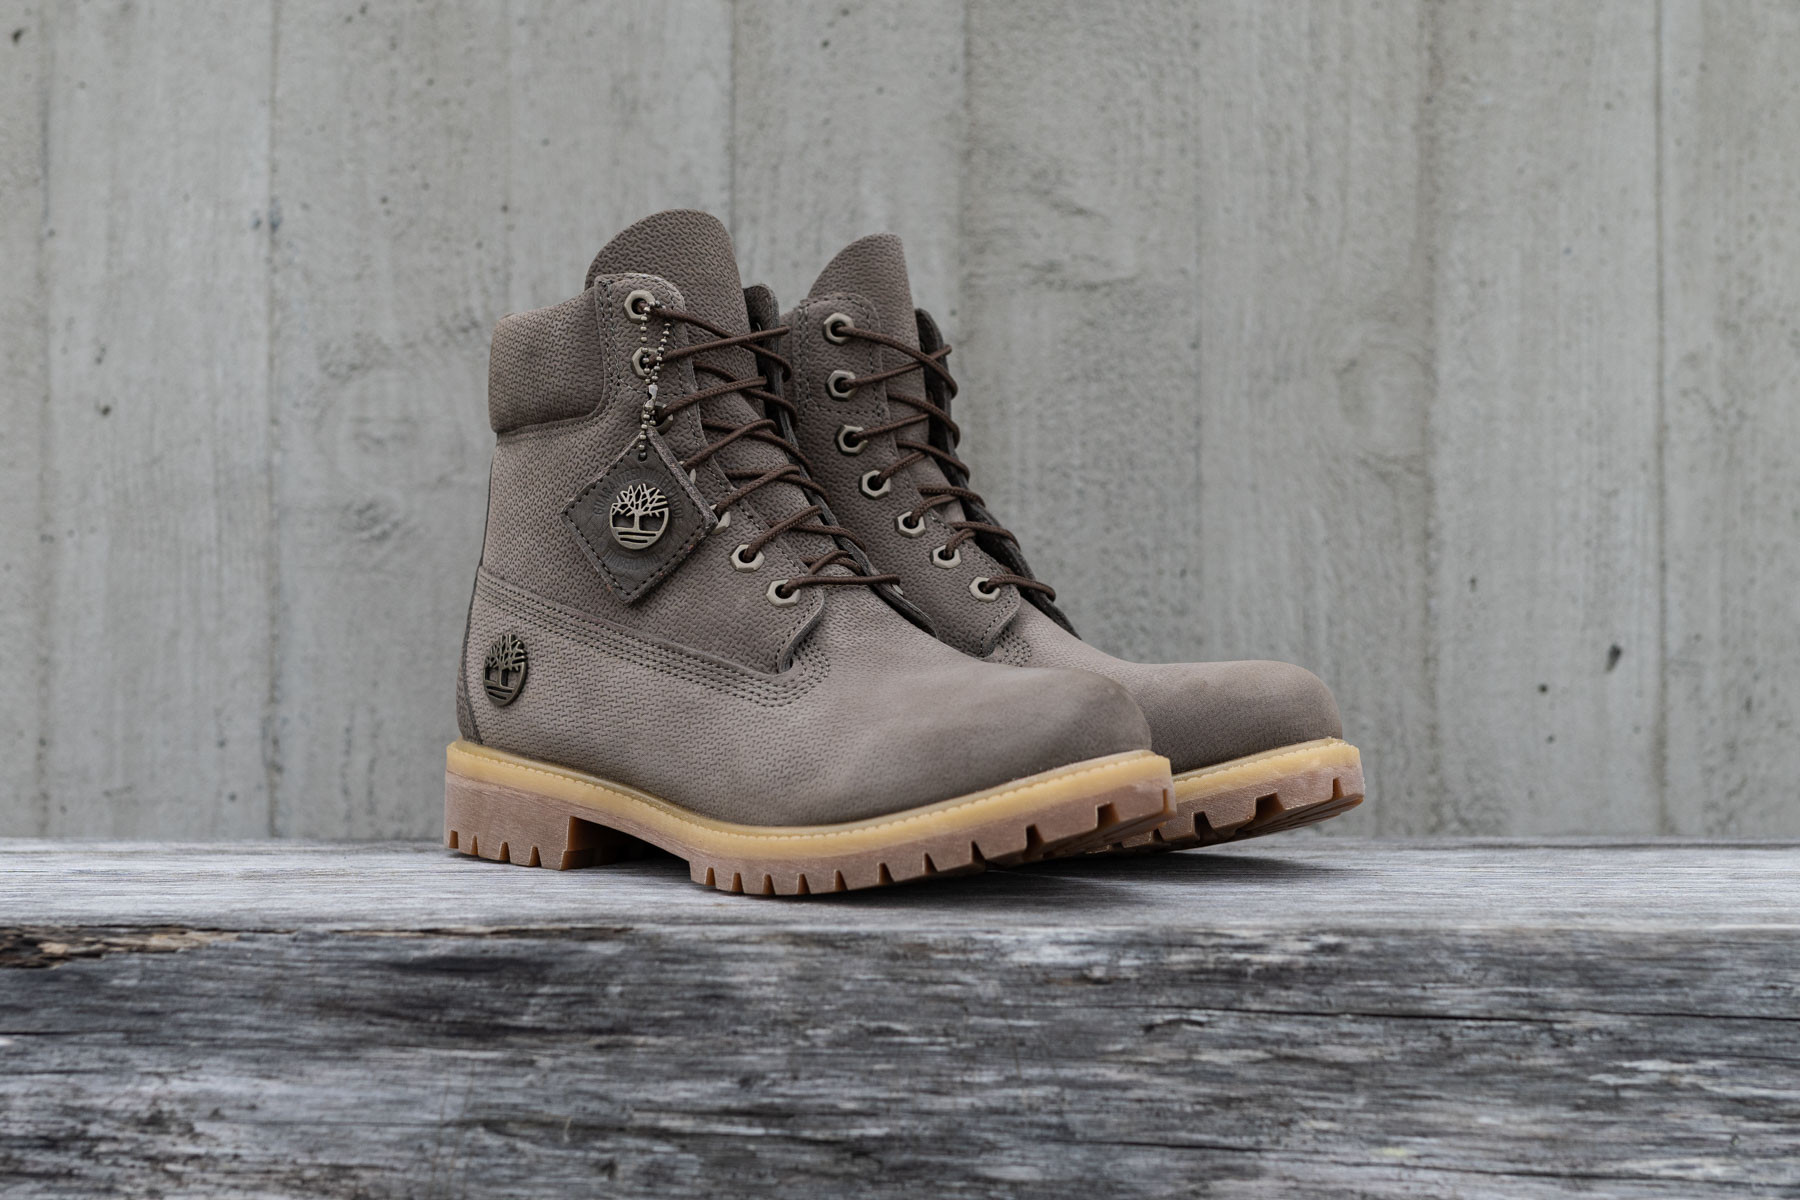 c4bdd72b8 Timberland 6 Inch - Boots - Sneaker.no